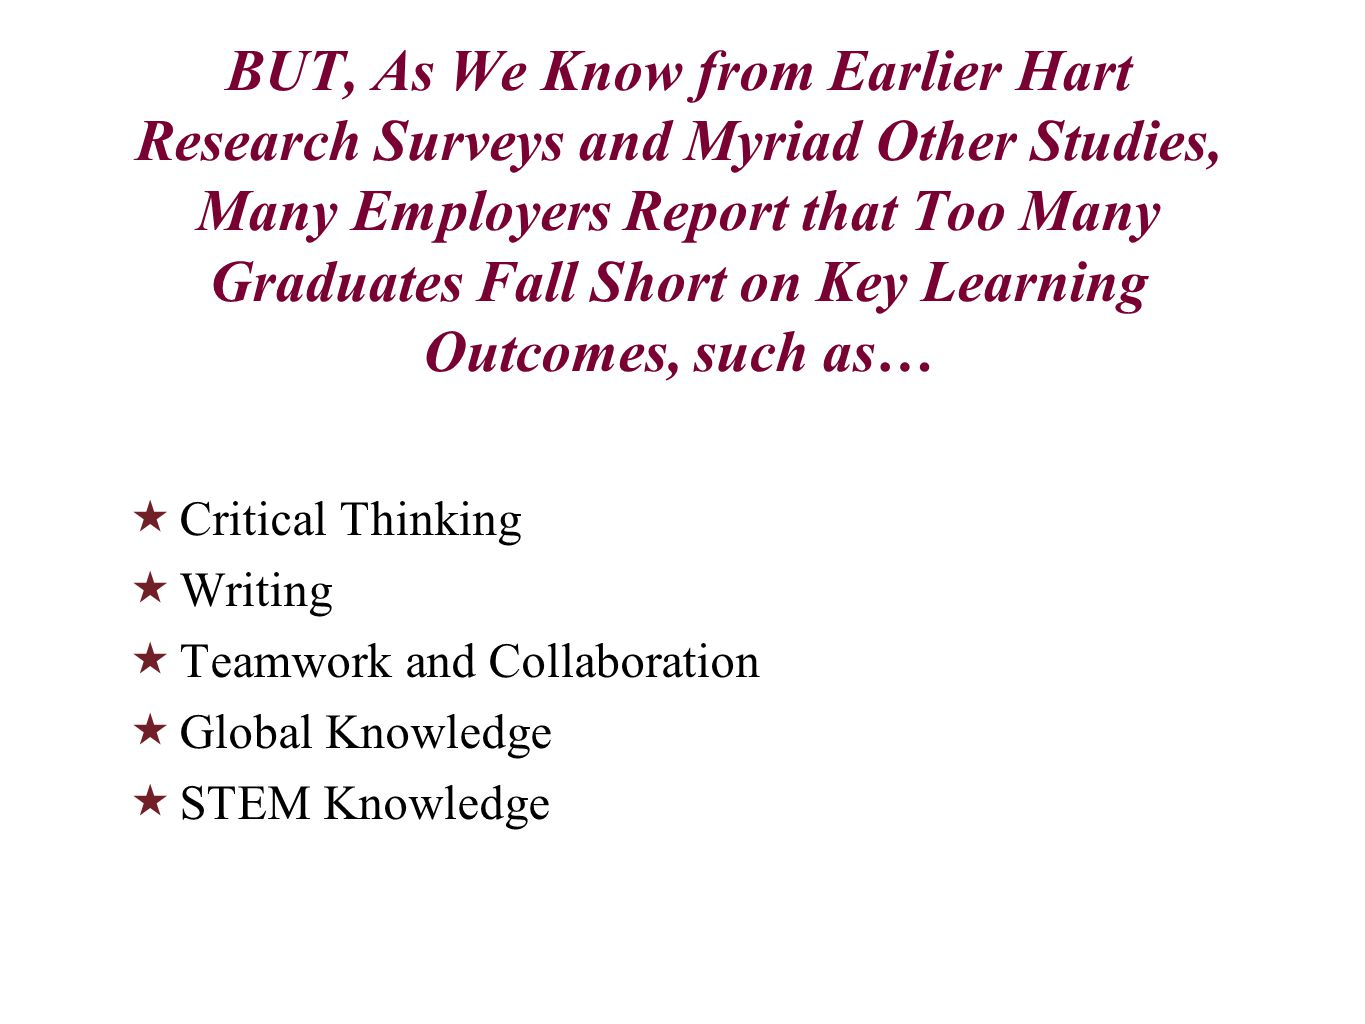 BUT, As We Know from Earlier Hart Research Surveys and Myriad Other Studies, Many Employers Report that Too Many Graduates Fall Short on Key Learning Outcomes, such as…  Critical Thinking  Writing  Teamwork and Collaboration  Global Knowledge  STEM Knowledge